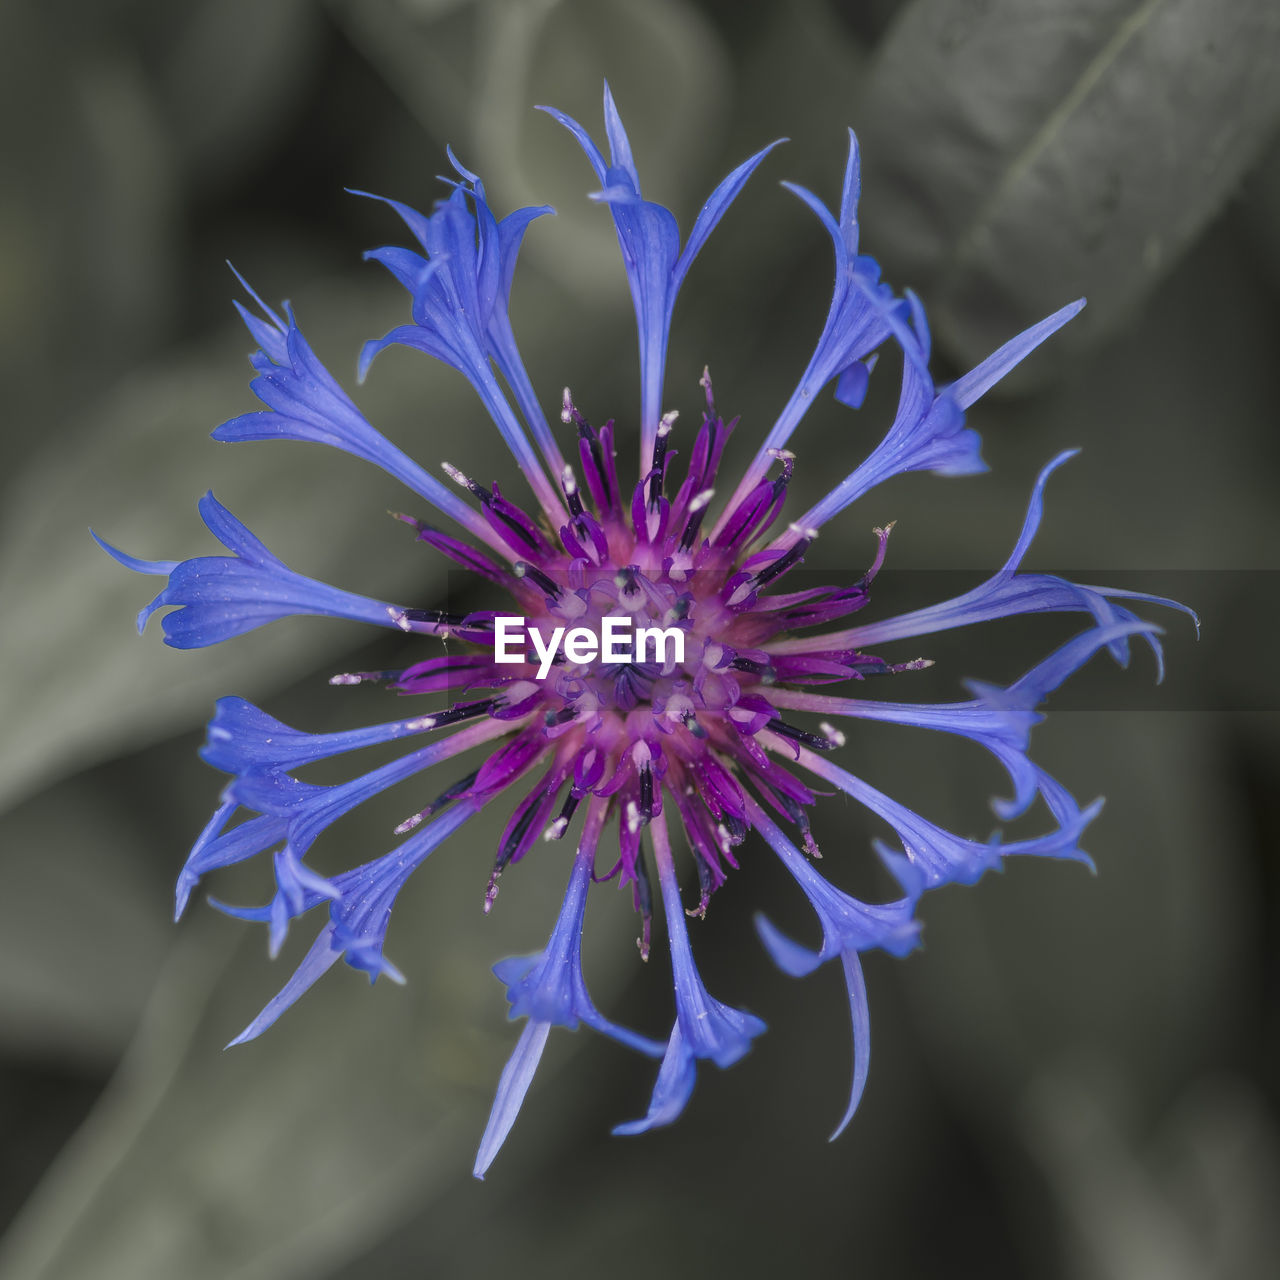 flower, fragility, petal, beauty in nature, freshness, purple, nature, growth, flower head, plant, no people, focus on foreground, day, blue, outdoors, close-up, blooming, passion flower